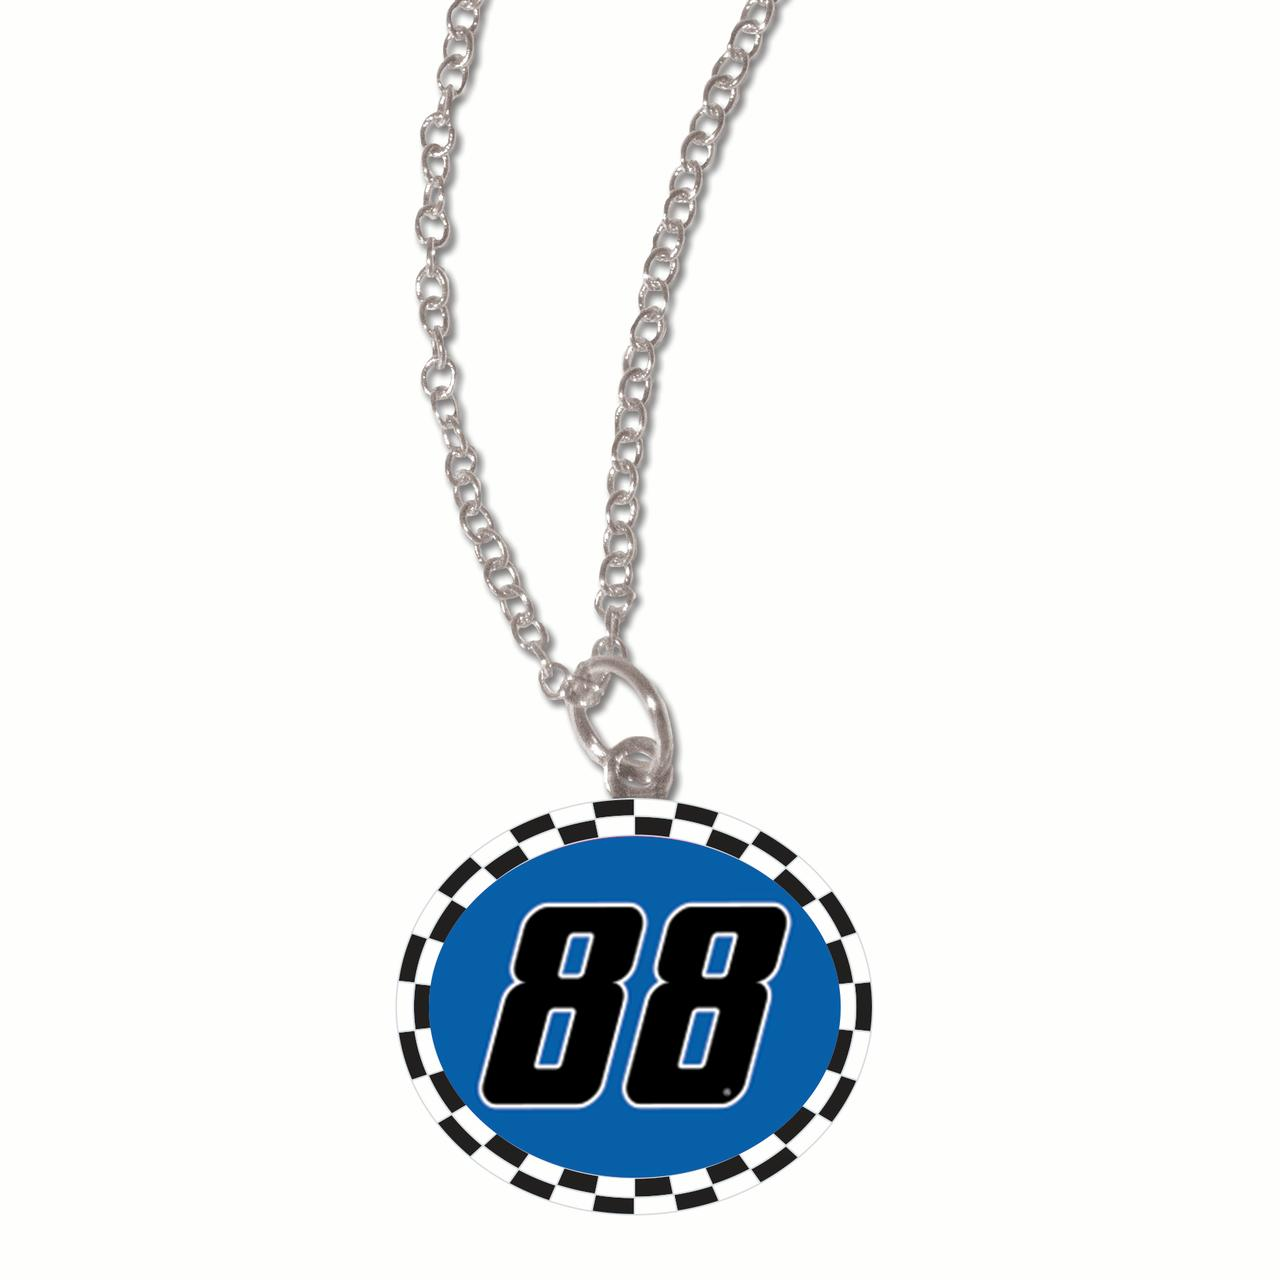 Alex Bowman WinCraft Driver Round Hard Insert Necklace - No Size